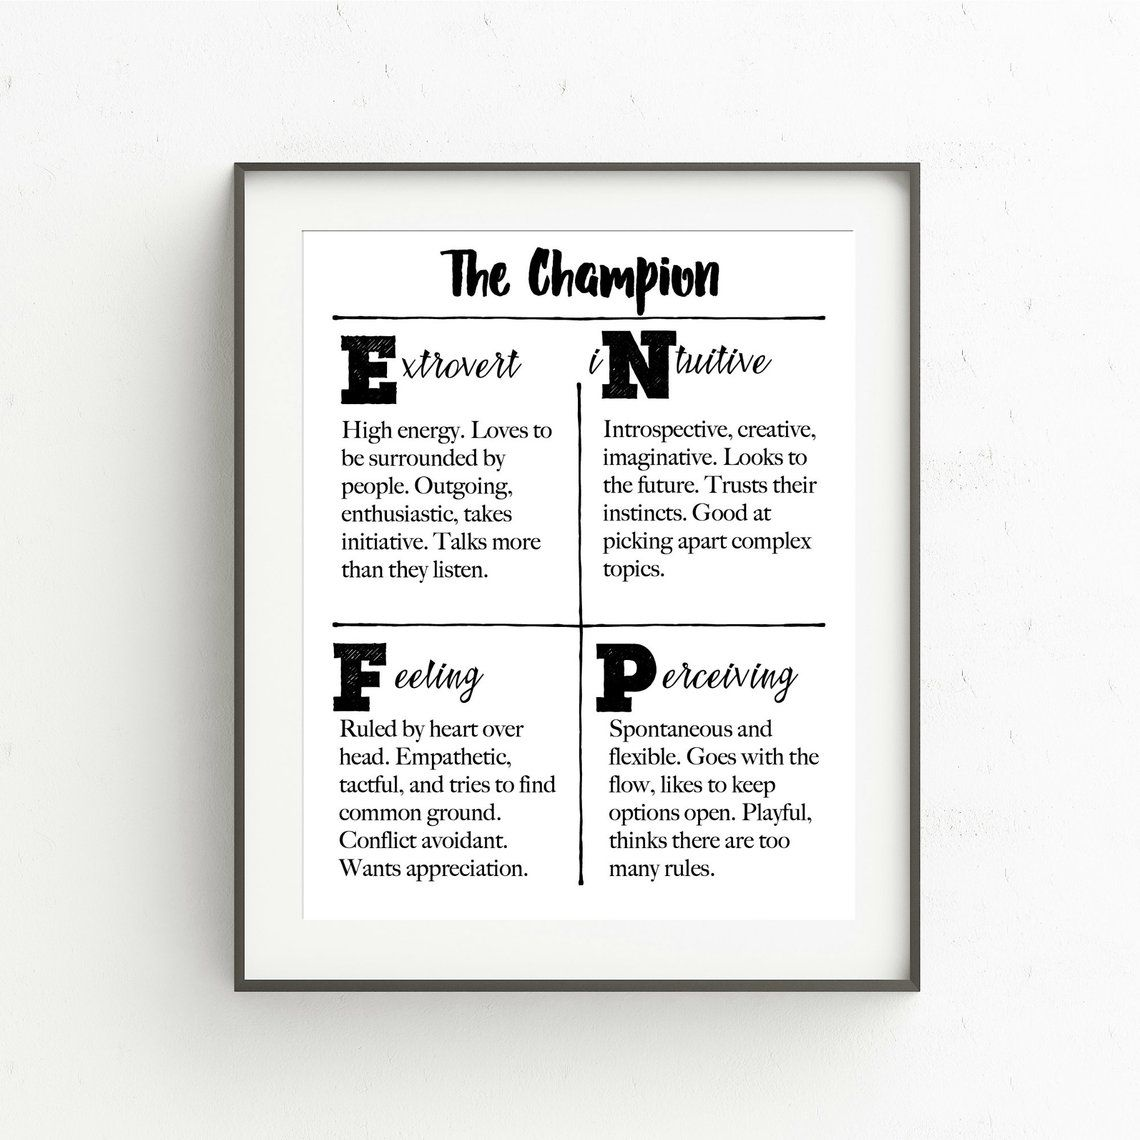 MyersBriggs Personality Traits Printable ENFP, The